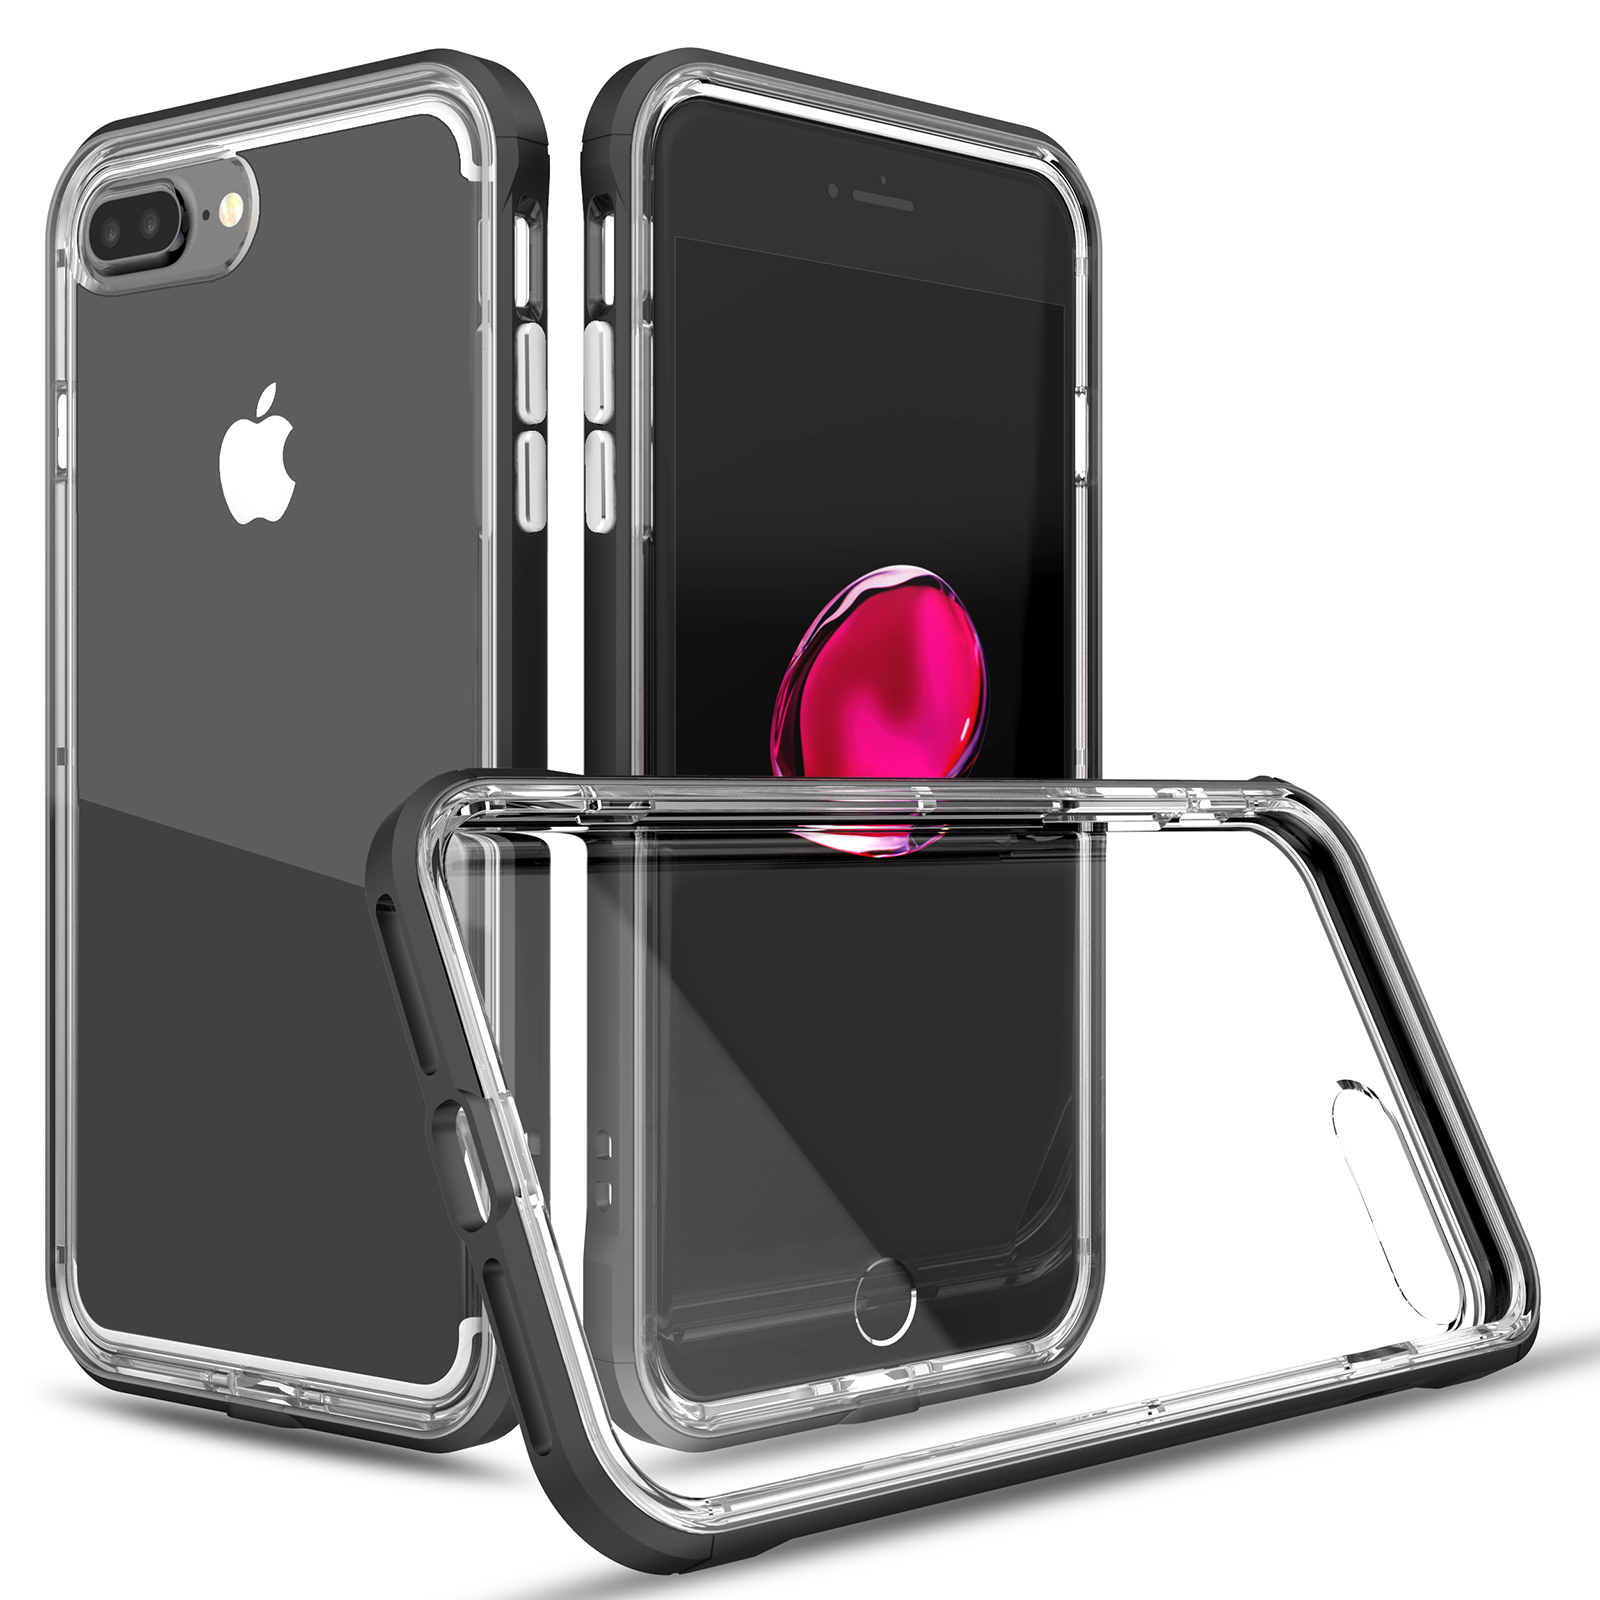 iPh 7 Plus High Quality Transparent Clear Silicone Phone Case For iPhone 7 Plus 5 5inch Colorful PC Frame Cover 2 in 1 Hybrid in Half wrapped Case from